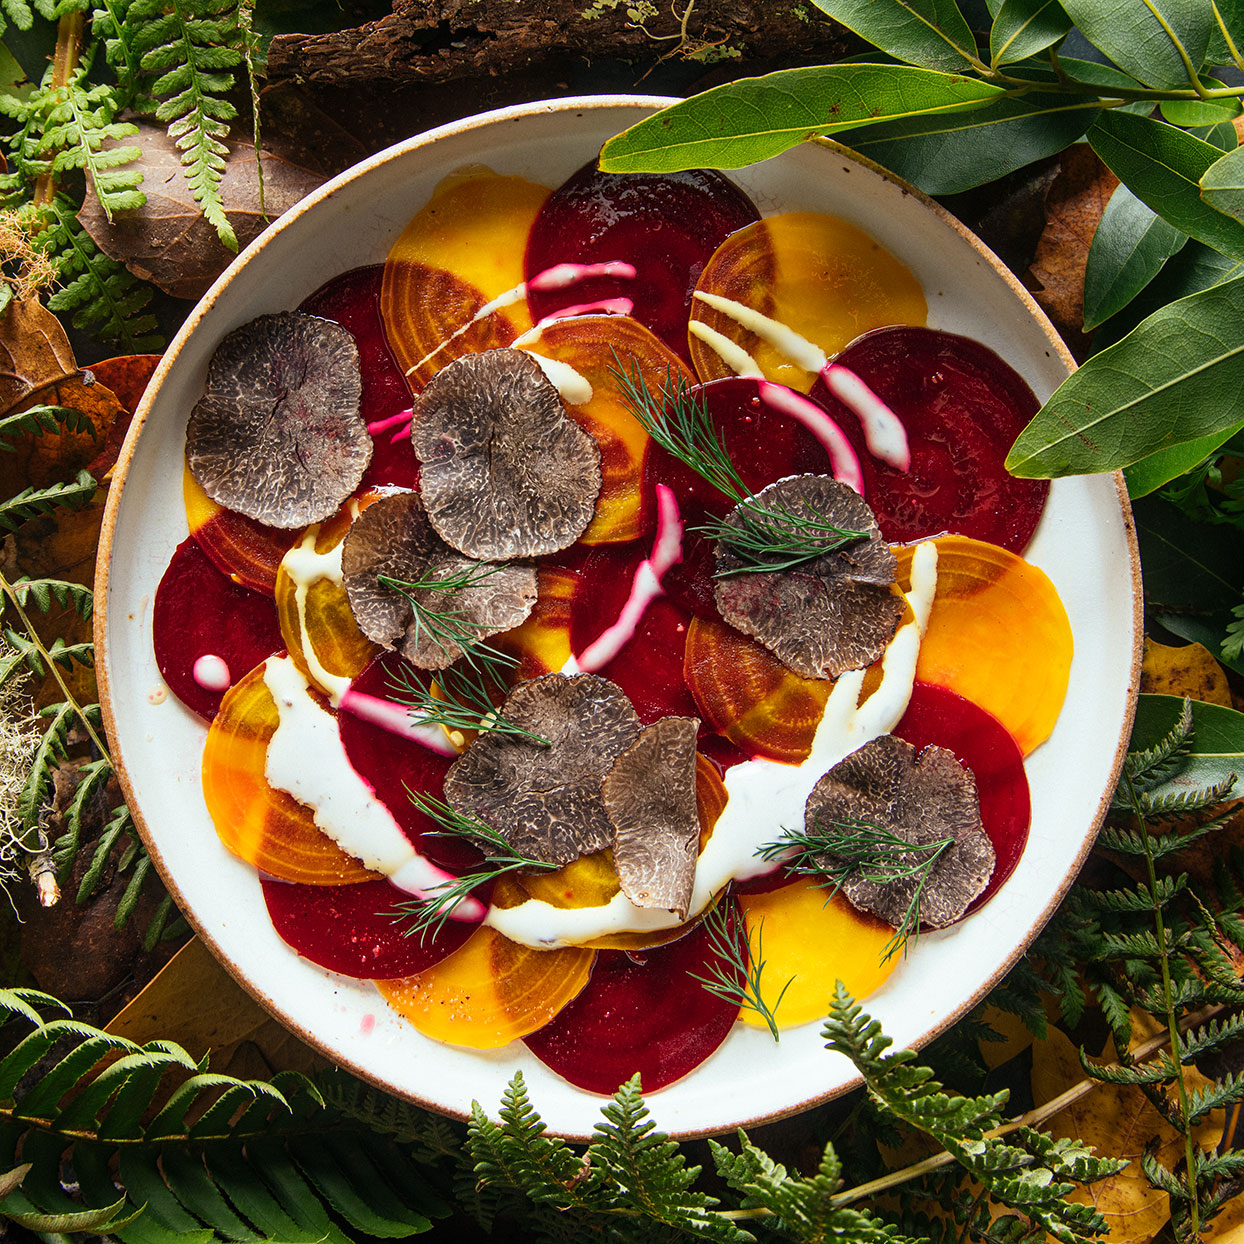 Beet Carpaccio with Truffles